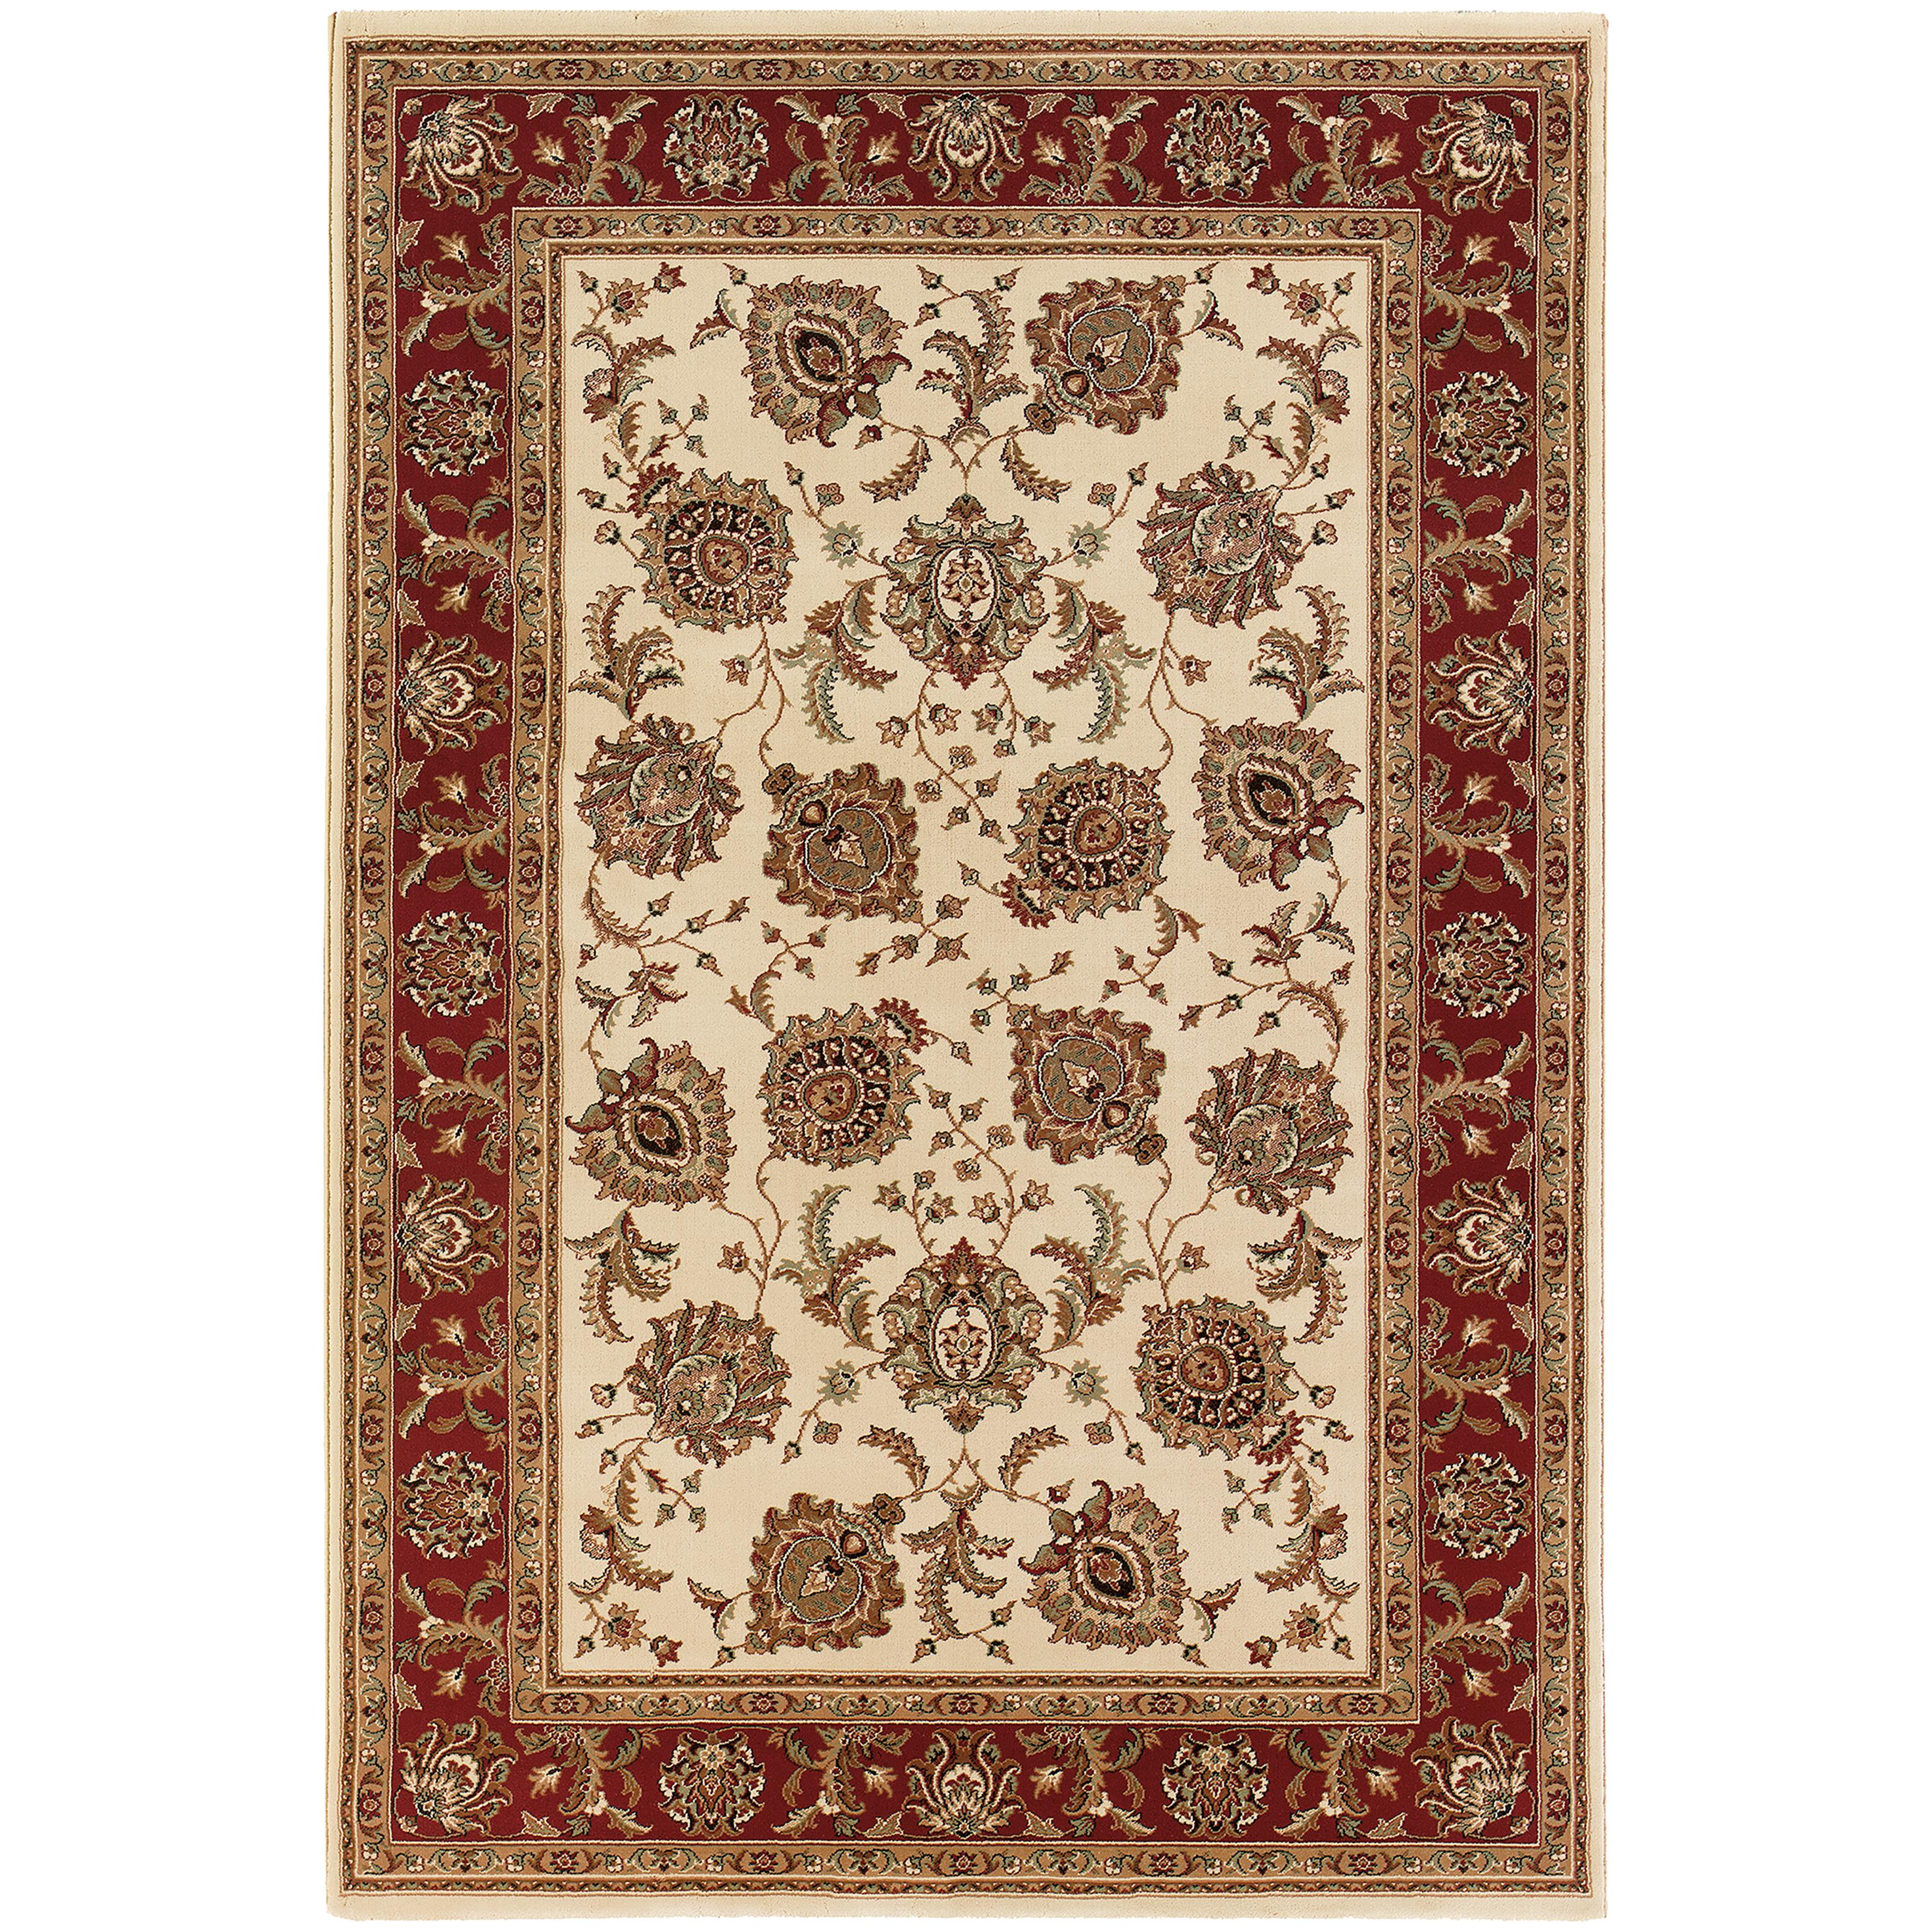 Ariana 12' X 15' Rug by Oriental Weavers at Steger's Furniture